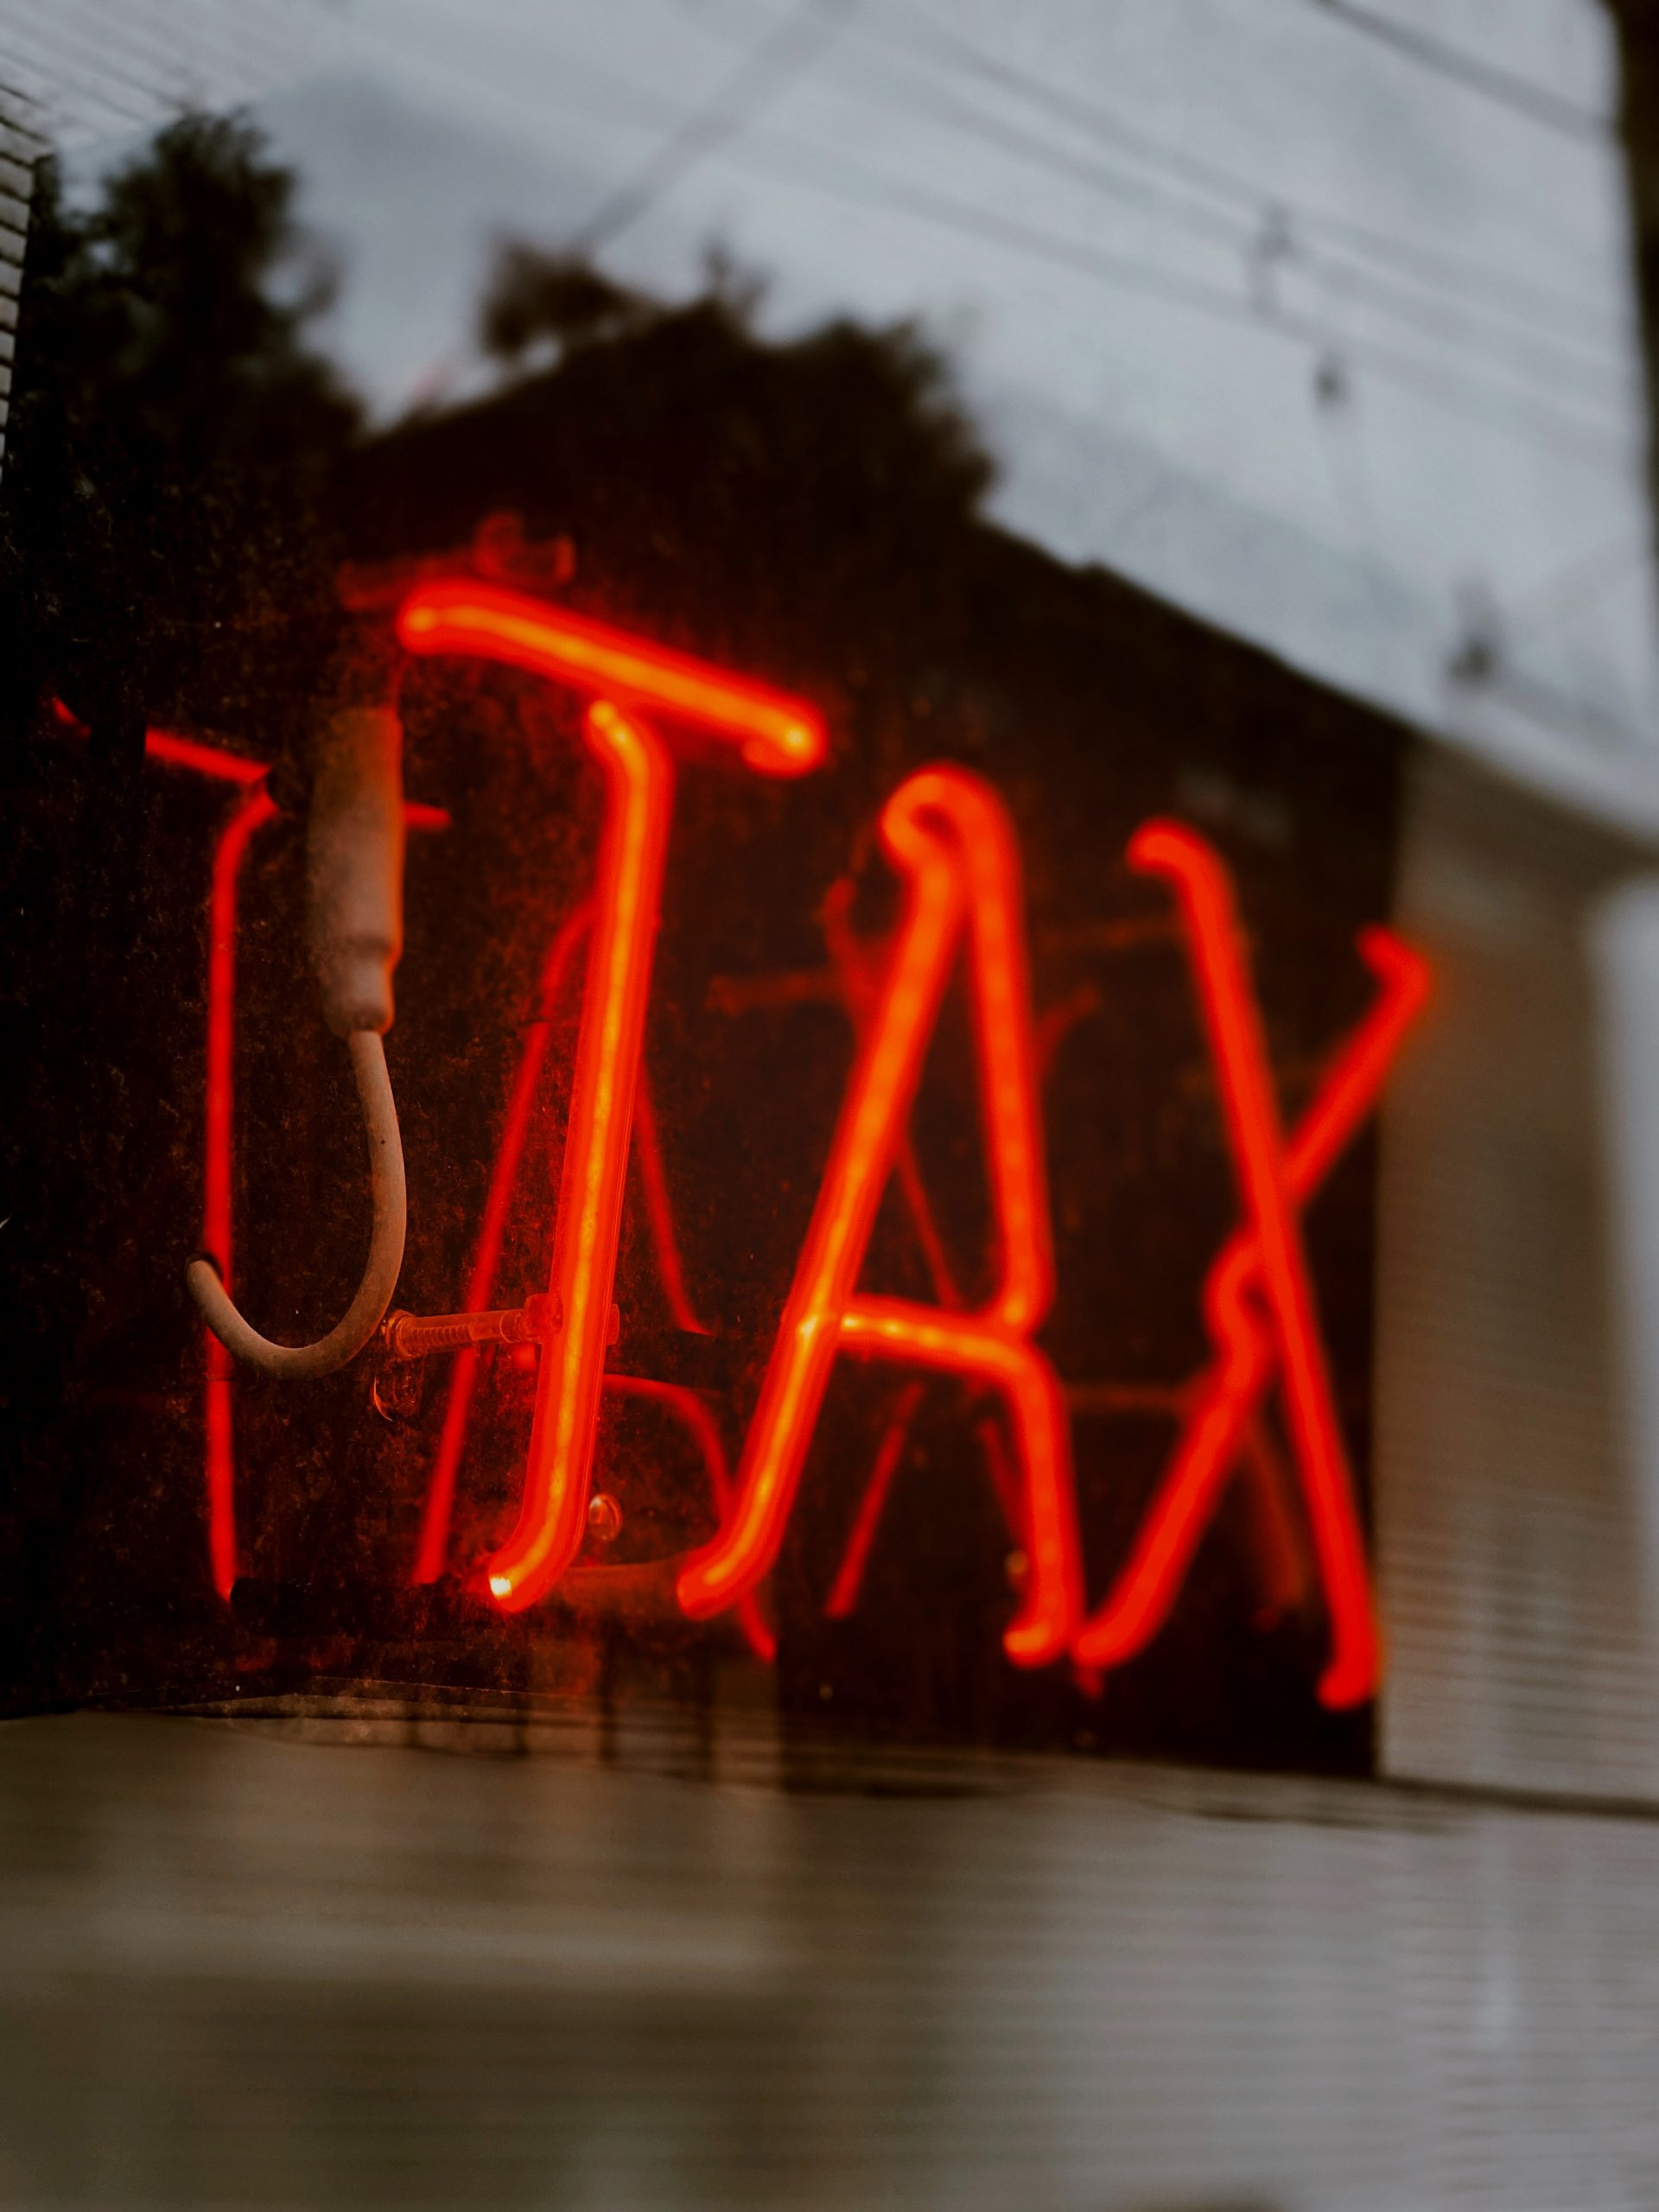 Neon sign reading TAX